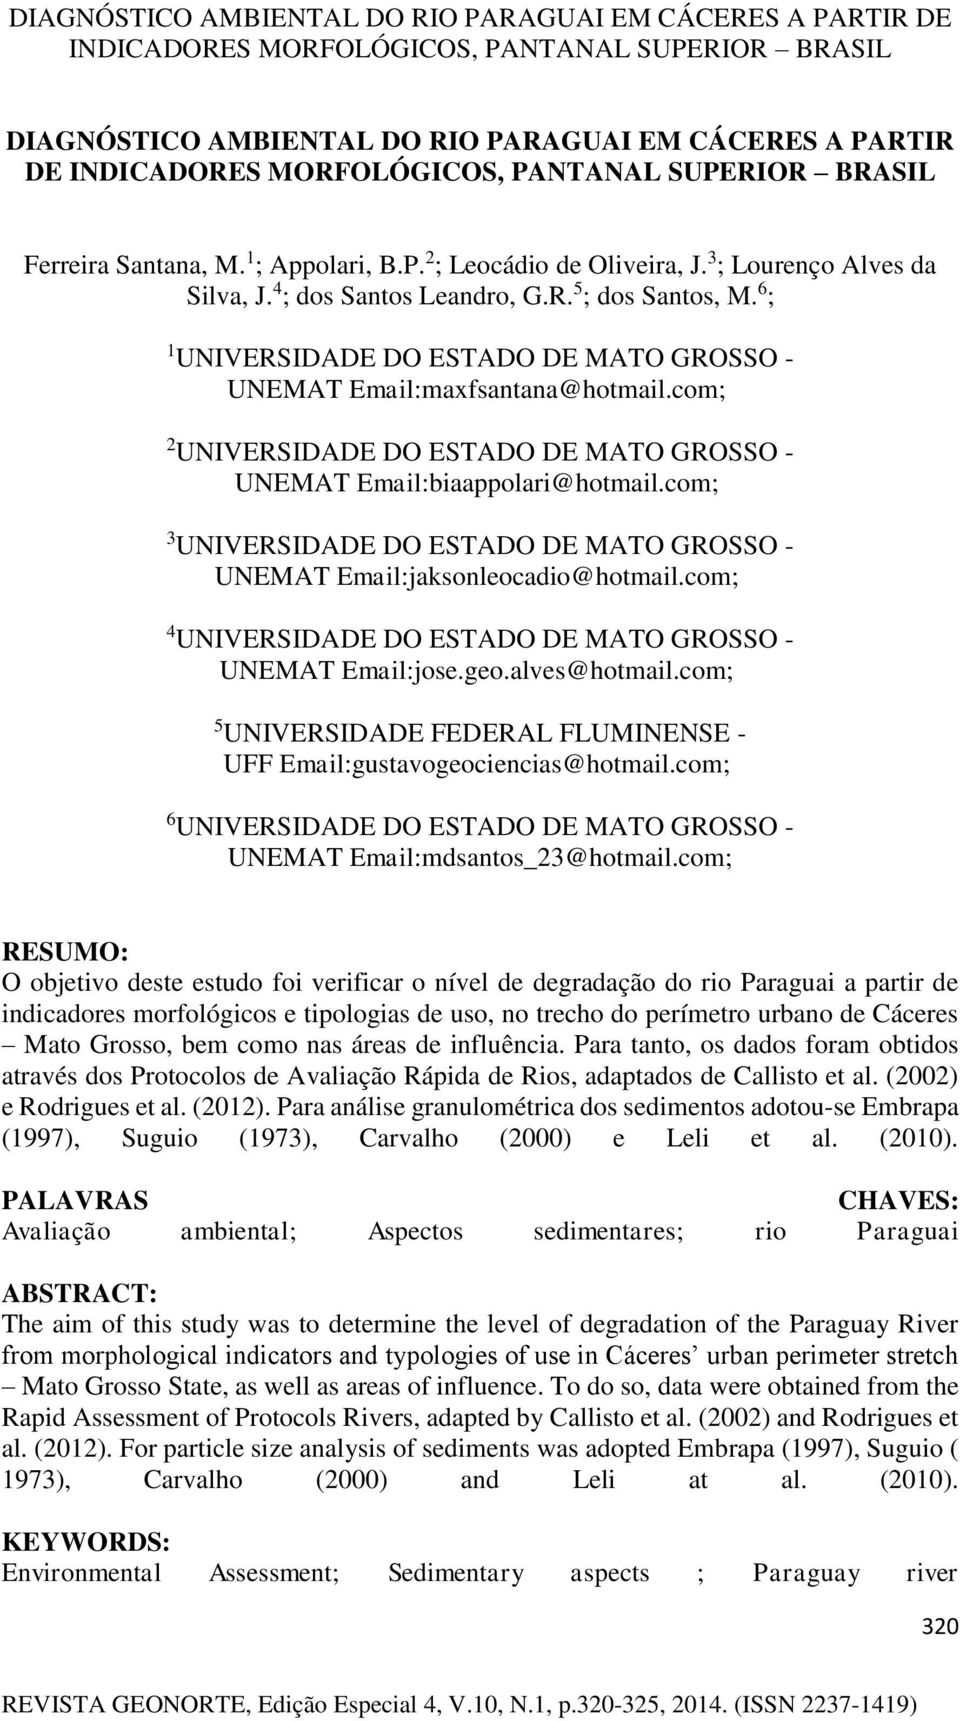 com; 3 UNIVERSIDADE DO ESTADO DE MATO GROSSO - UNEMAT Email:jaksonleocadio@hotmail.com; 4 UNIVERSIDADE DO ESTADO DE MATO GROSSO - UNEMAT Email:jose.geo.alves@hotmail.